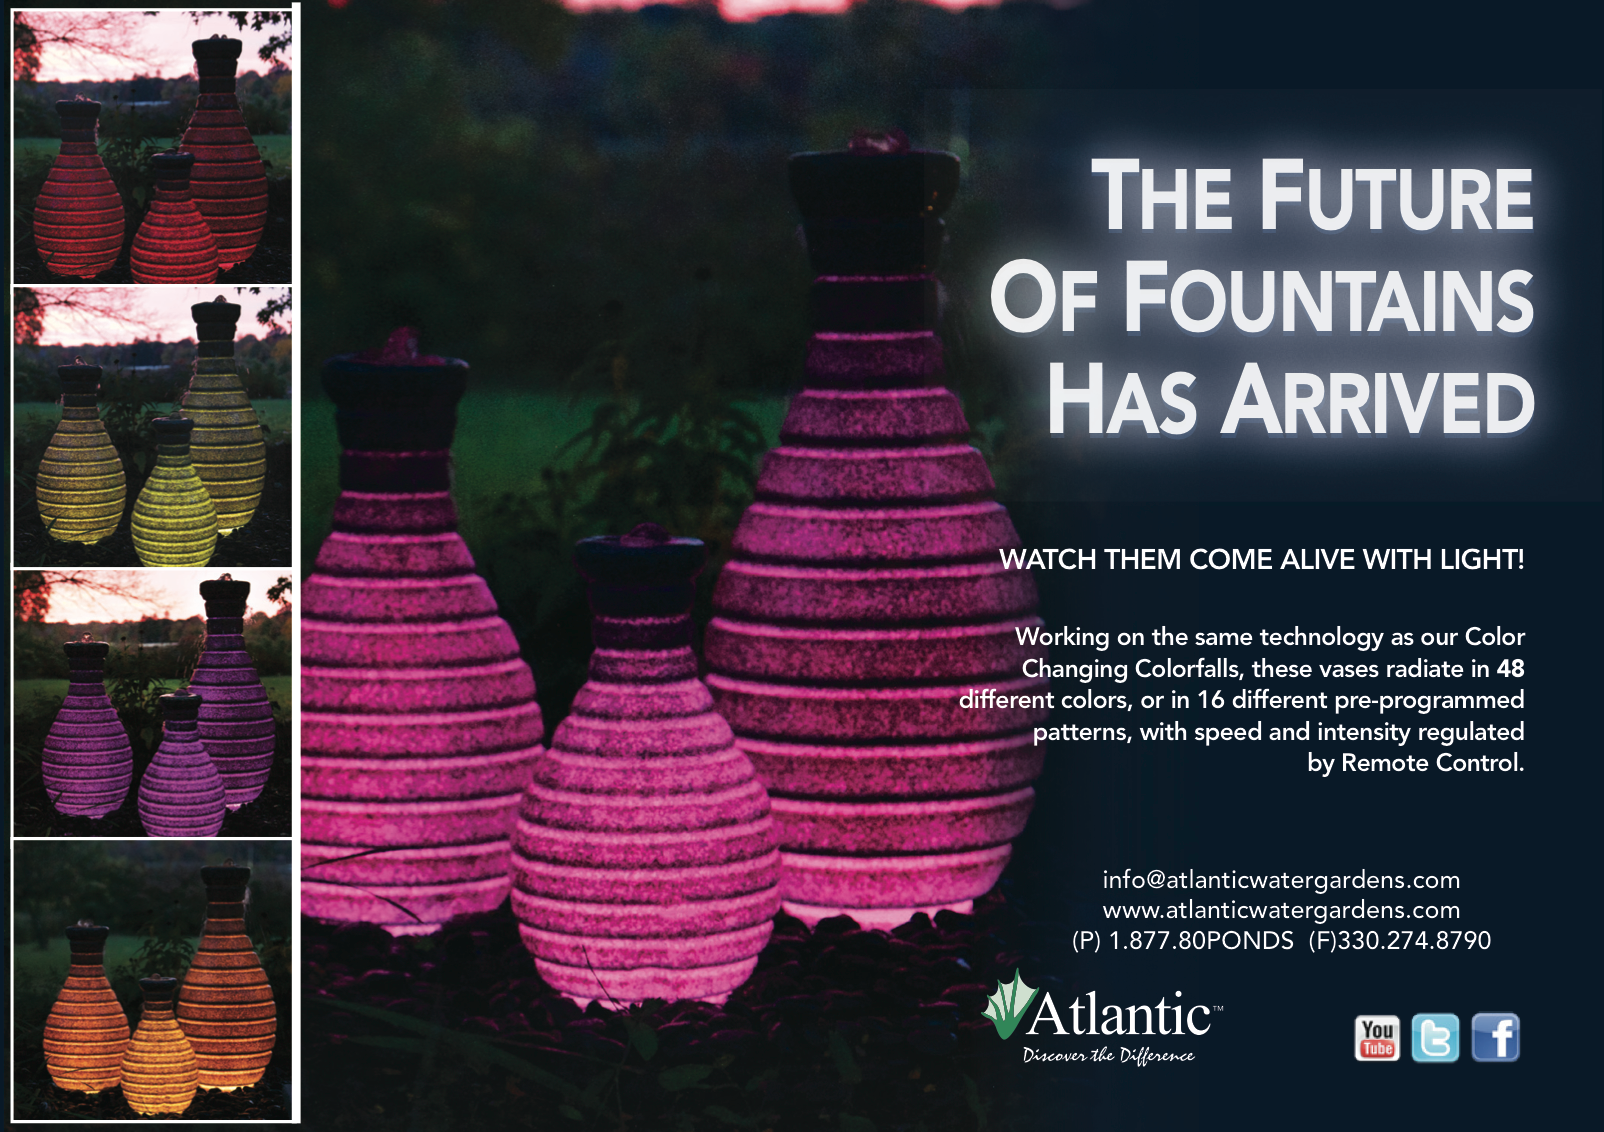 Color Changing Vase Fountains From Atlantic Water Gardens.